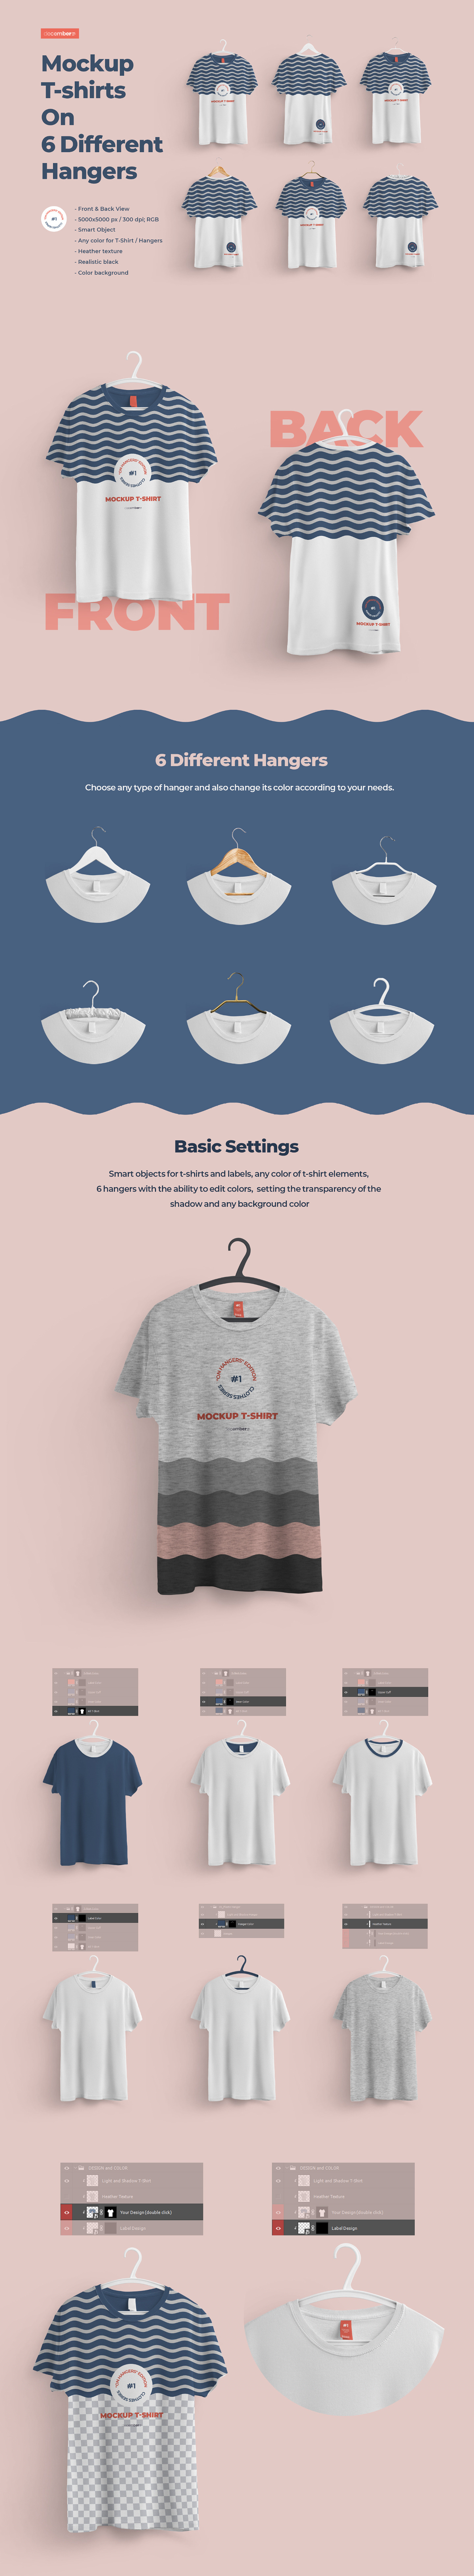 Download Front And Back T Shirts Mockup With 6 Different Hangers In Apparel Mockups On Yellow Images Creative Store PSD Mockup Templates